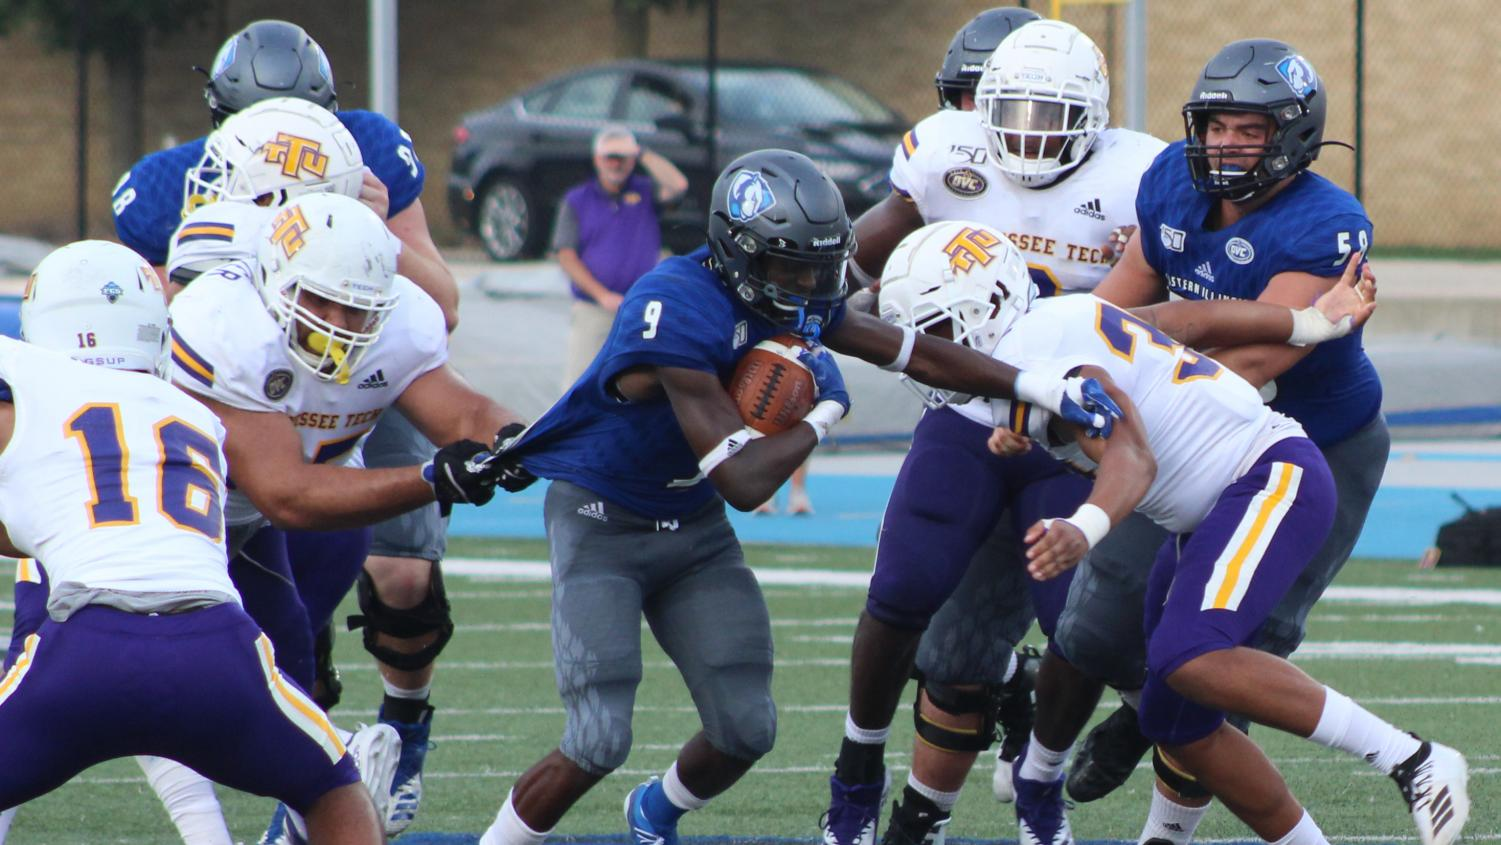 Eastern running back Jaelin Benefield attempts to escape the grasp of a Tennessee Tech defender on Sept. 28 at O'Brien Field. Benefield had 69 receiving yards, 46 rushing yards and two rushing touchdowns in the Panthers' 40-29 loss to the Golden Eagles.